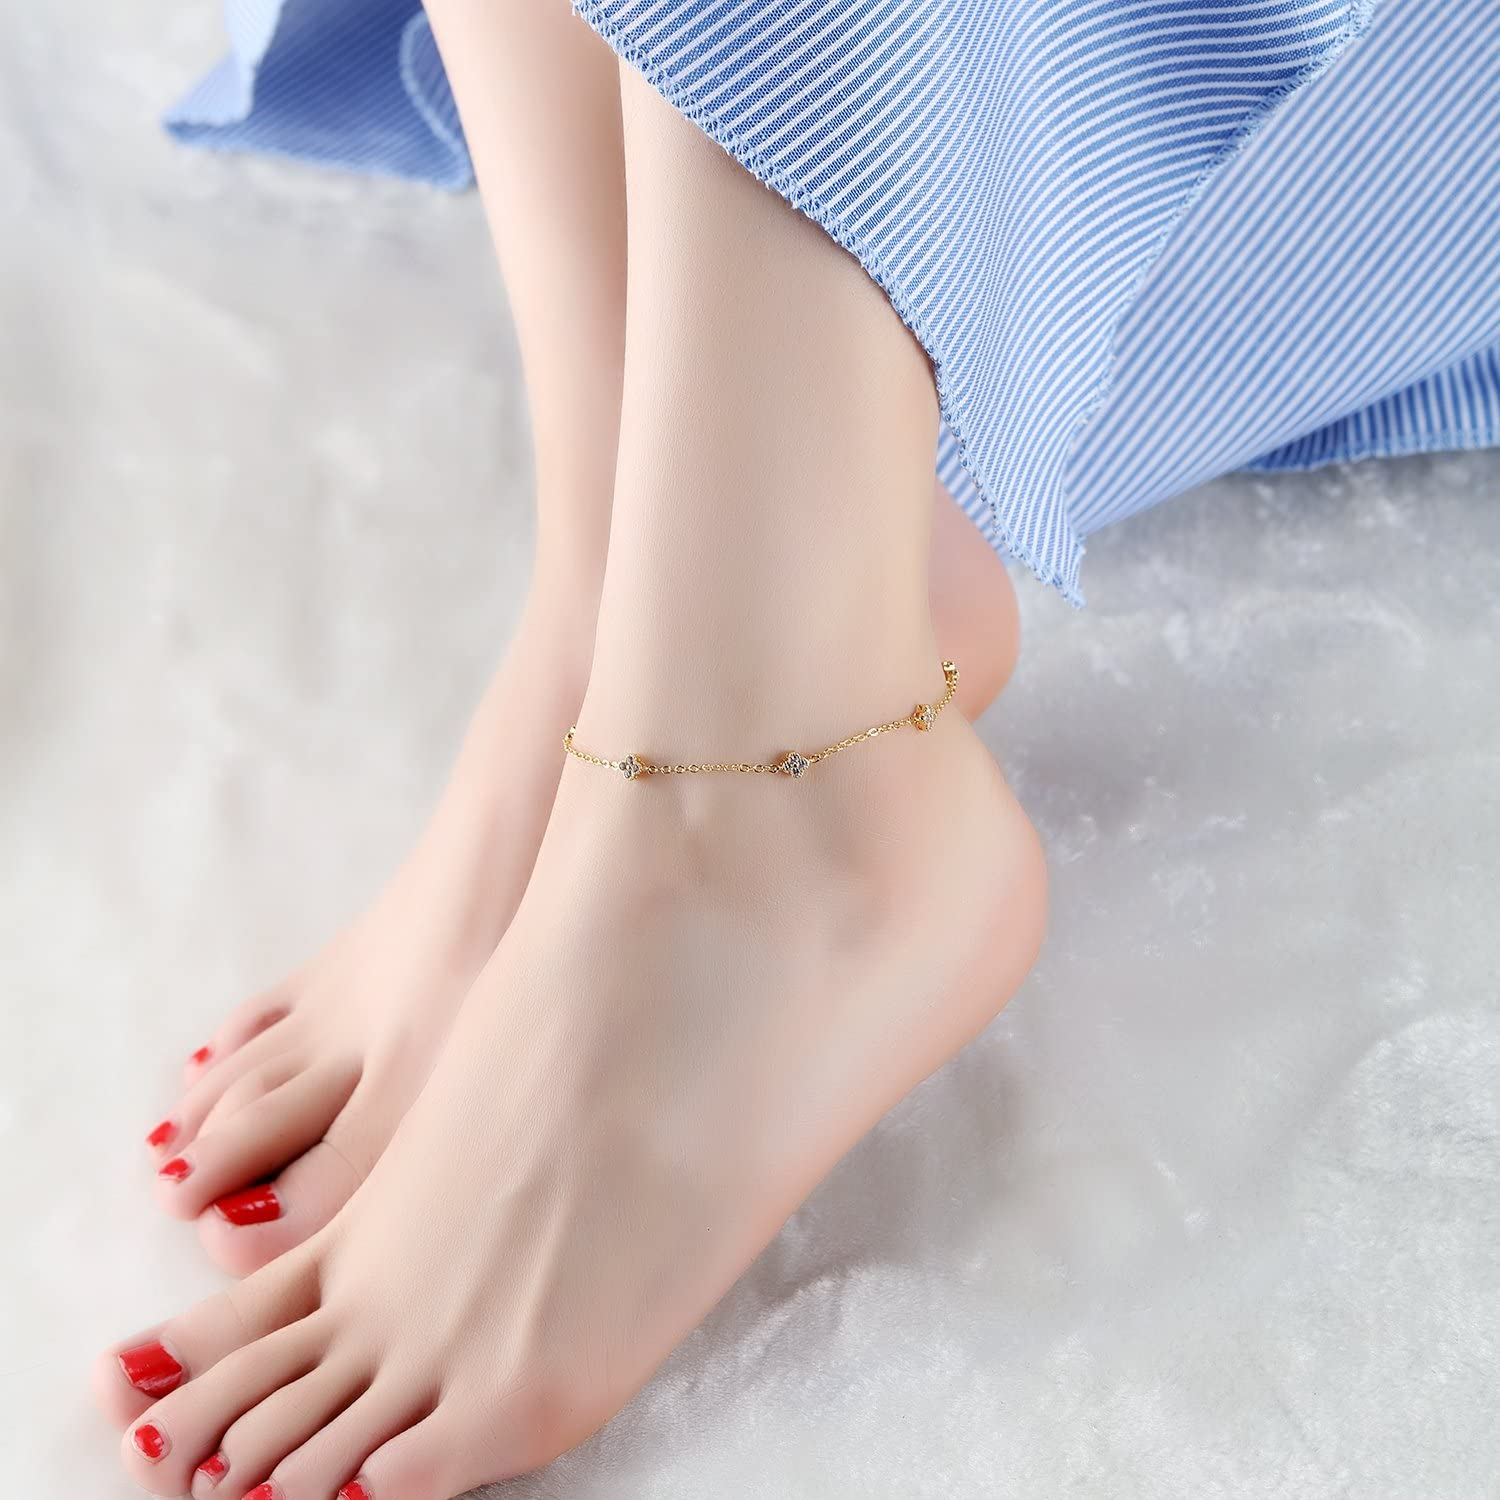 LOHOME Fashion Aanklets 18K Gold Tone Rhinestone Lucky Grass Charm Foot Chain for Women L7.8+1.9